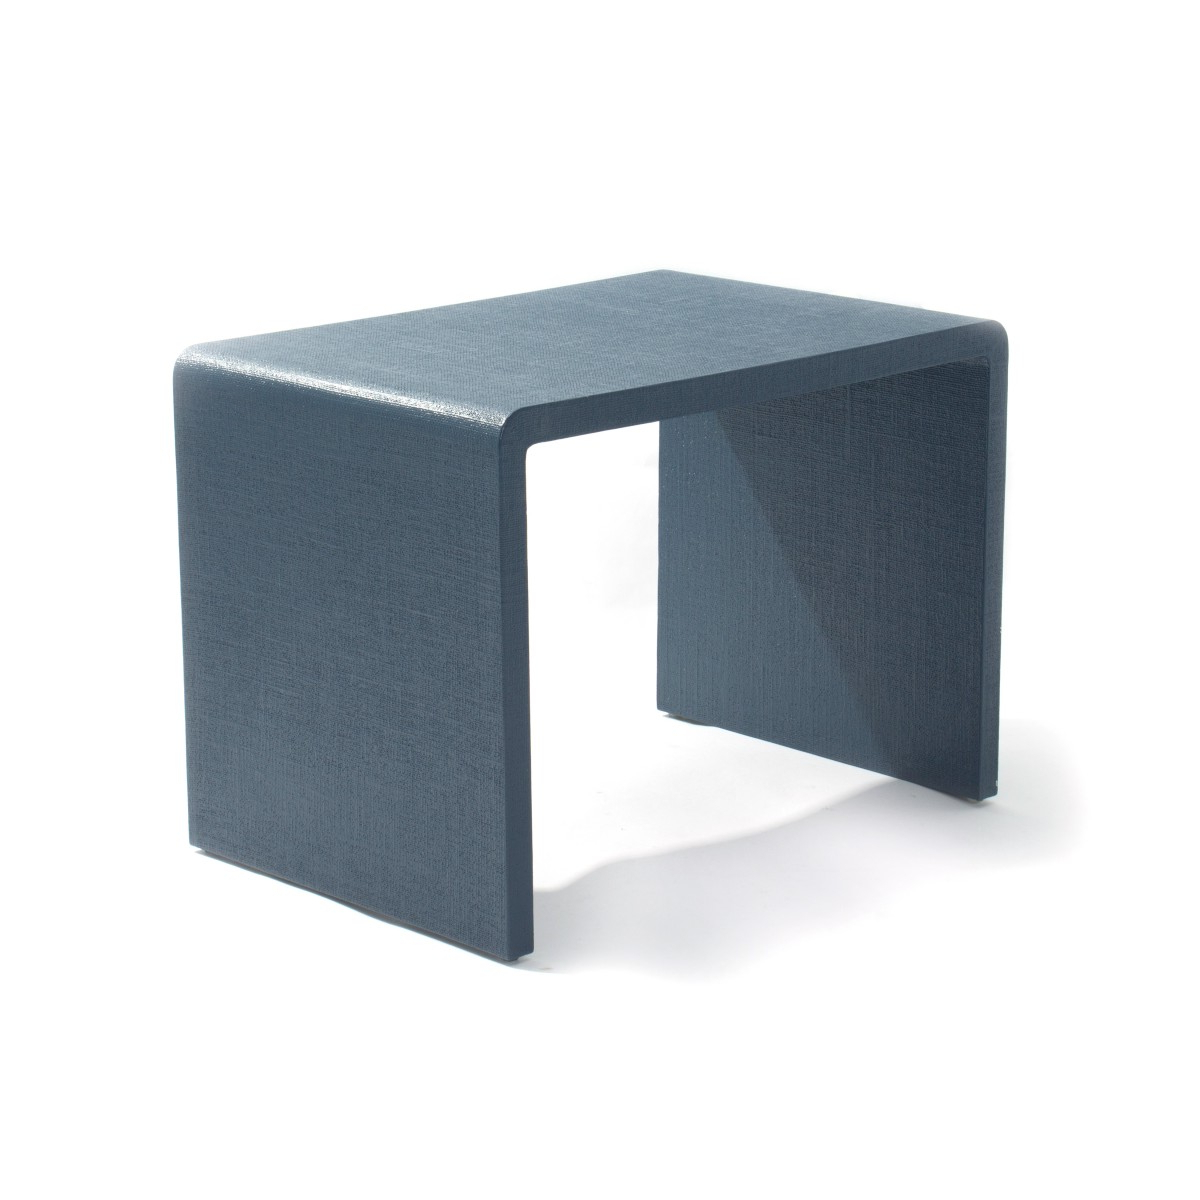 Pair Of John Lyle Blue Lacquered Linen Waterfall Side Tables Decor Throughout Most Recent Square Waterfall Coffee Tables (View 12 of 20)